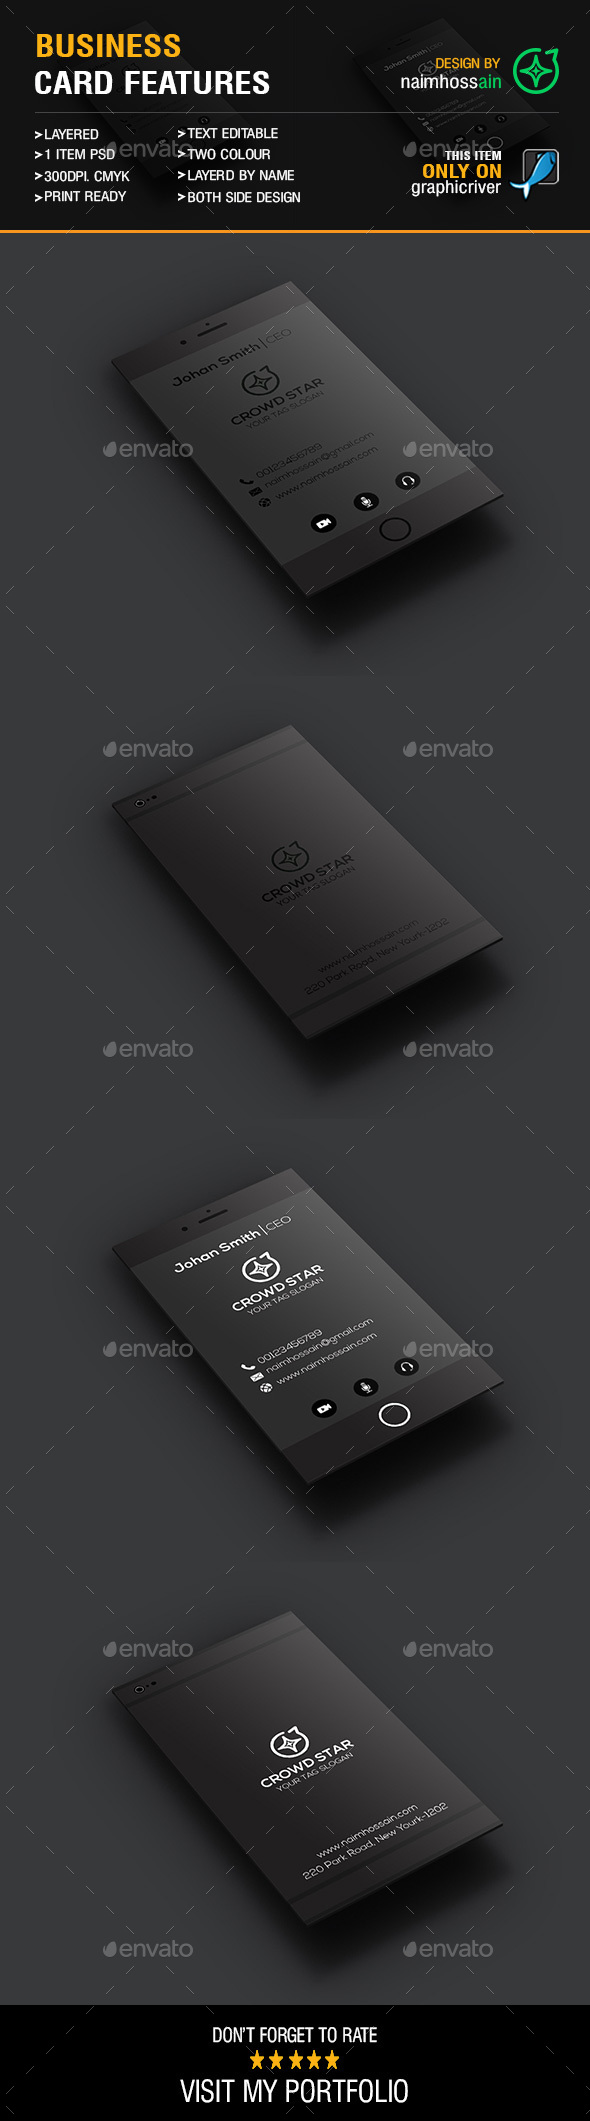 Mobile Business Card - Business Cards Print Templates